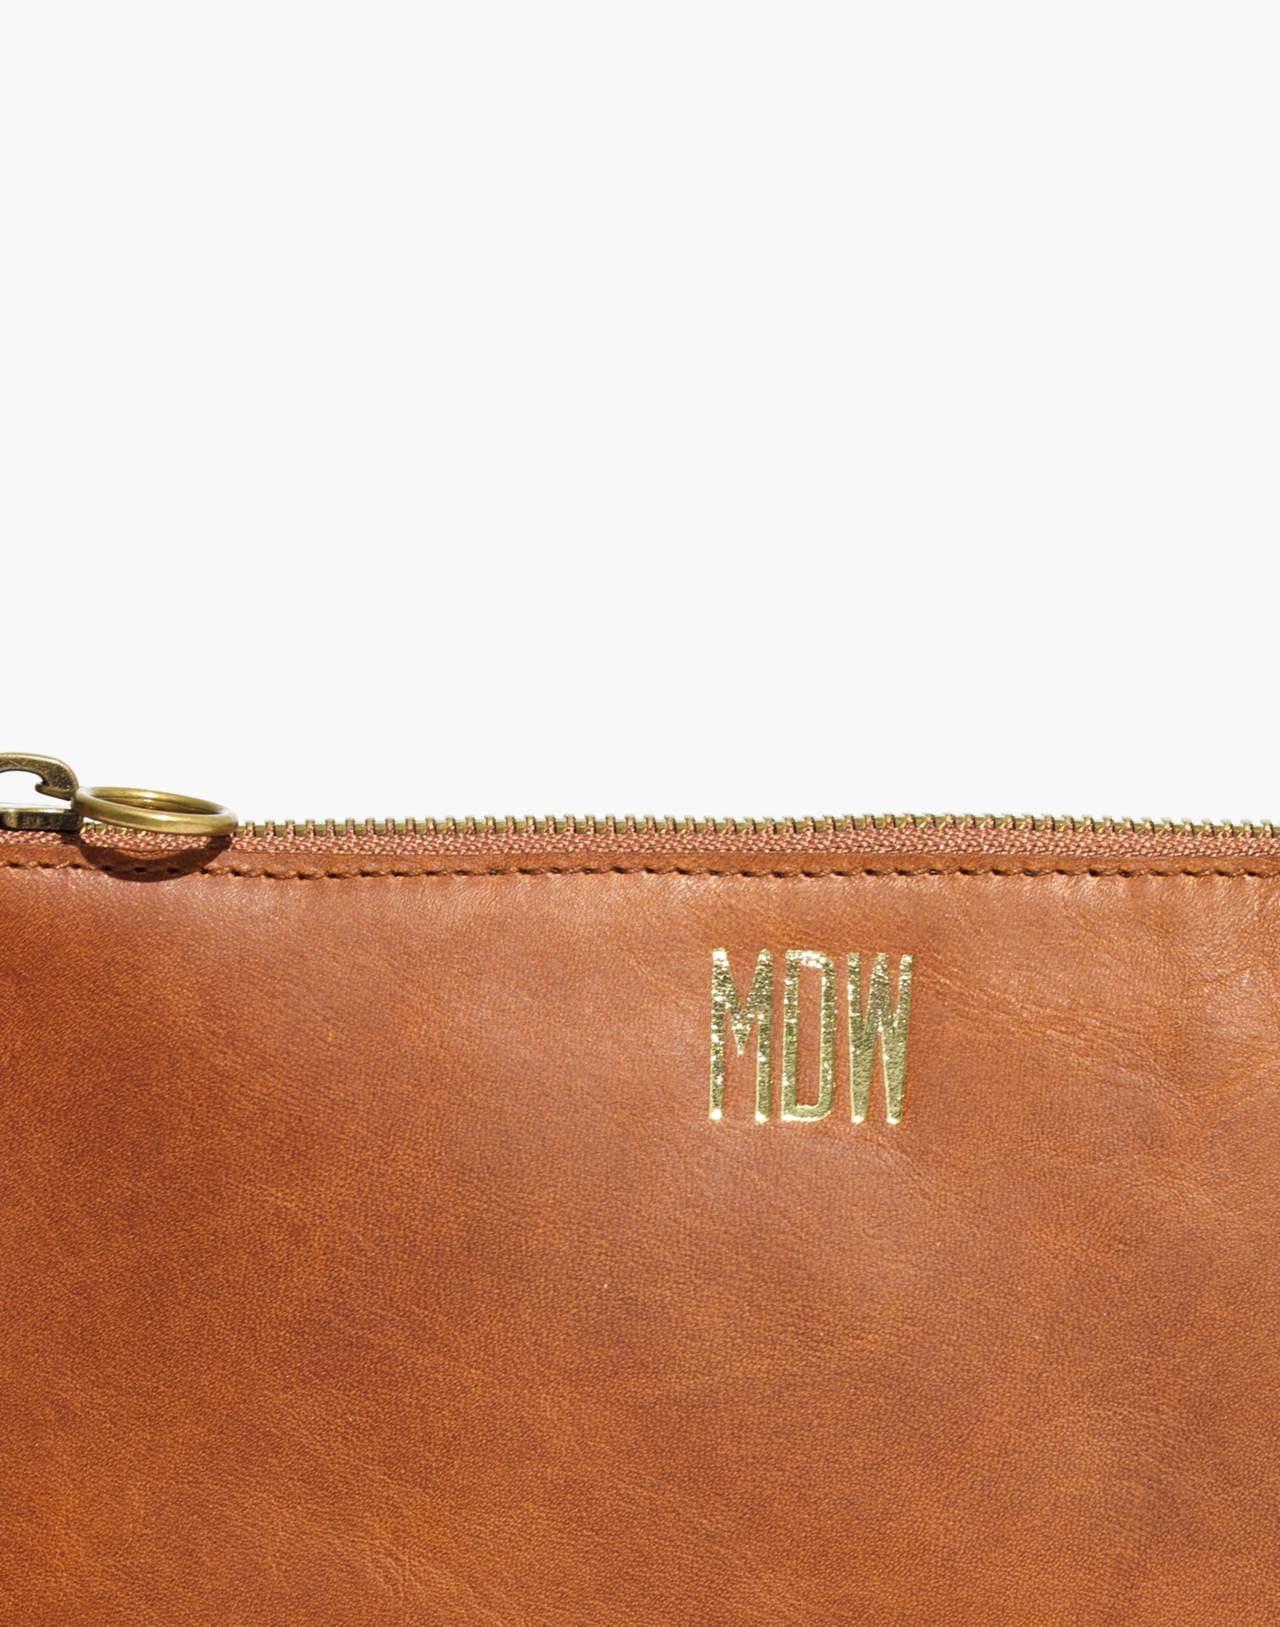 The Simple Crossbody Bag in english saddle image 4